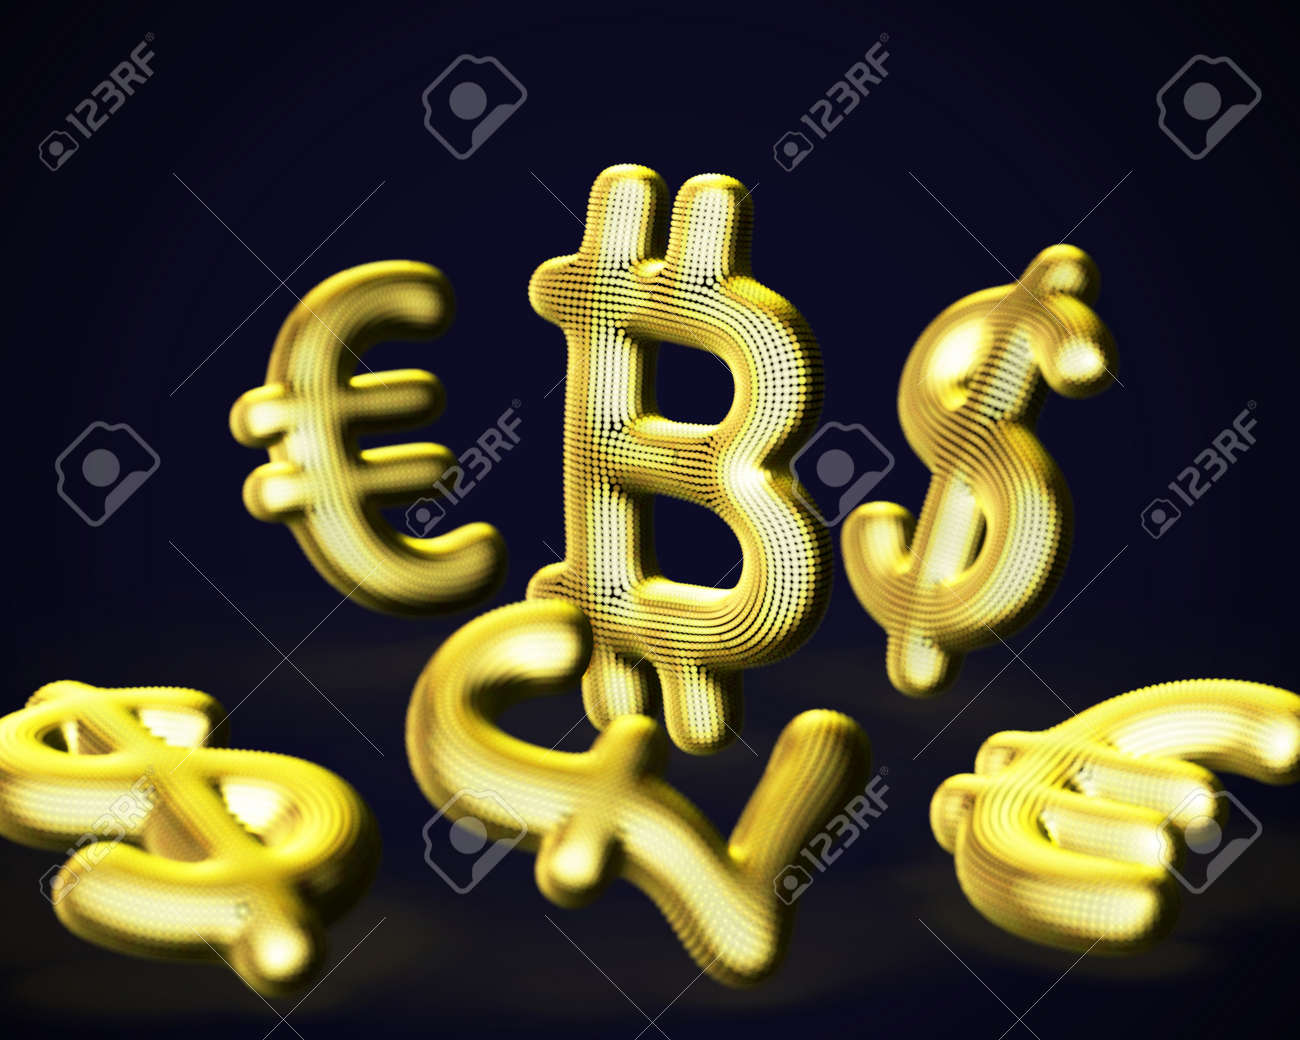 Digital golden 3D Bitcoin cryptocurrency logo surrounded by scattered fiat currencies signs on blue background. Concept of crypto investing and stock exchange trading. Vector illustration - 165820130